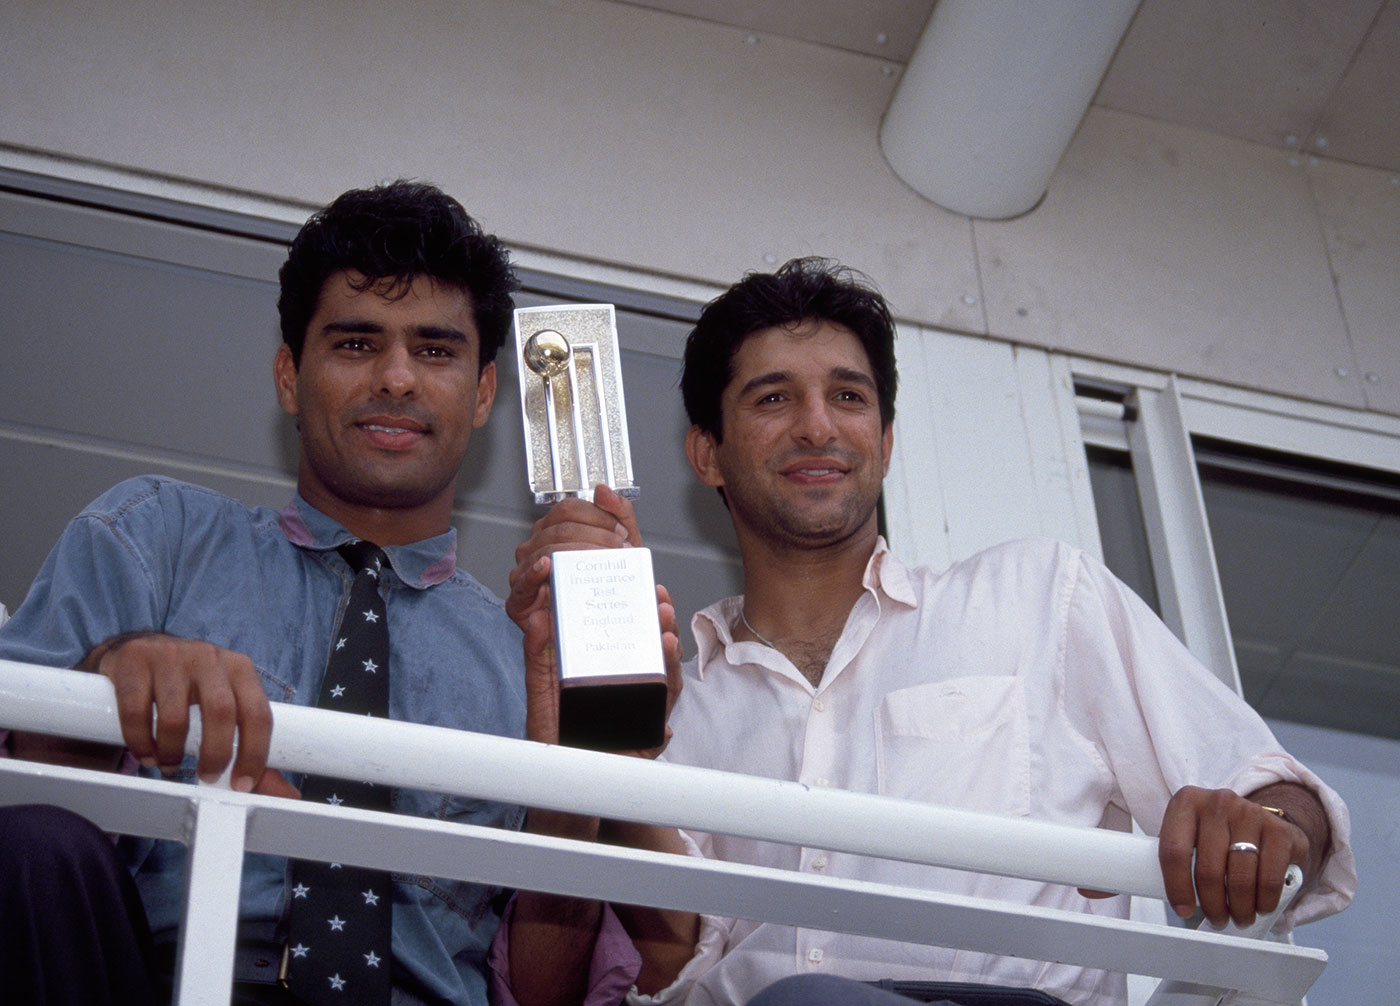 Waqar Younis (left) and Wasim Akram hold up the trophy